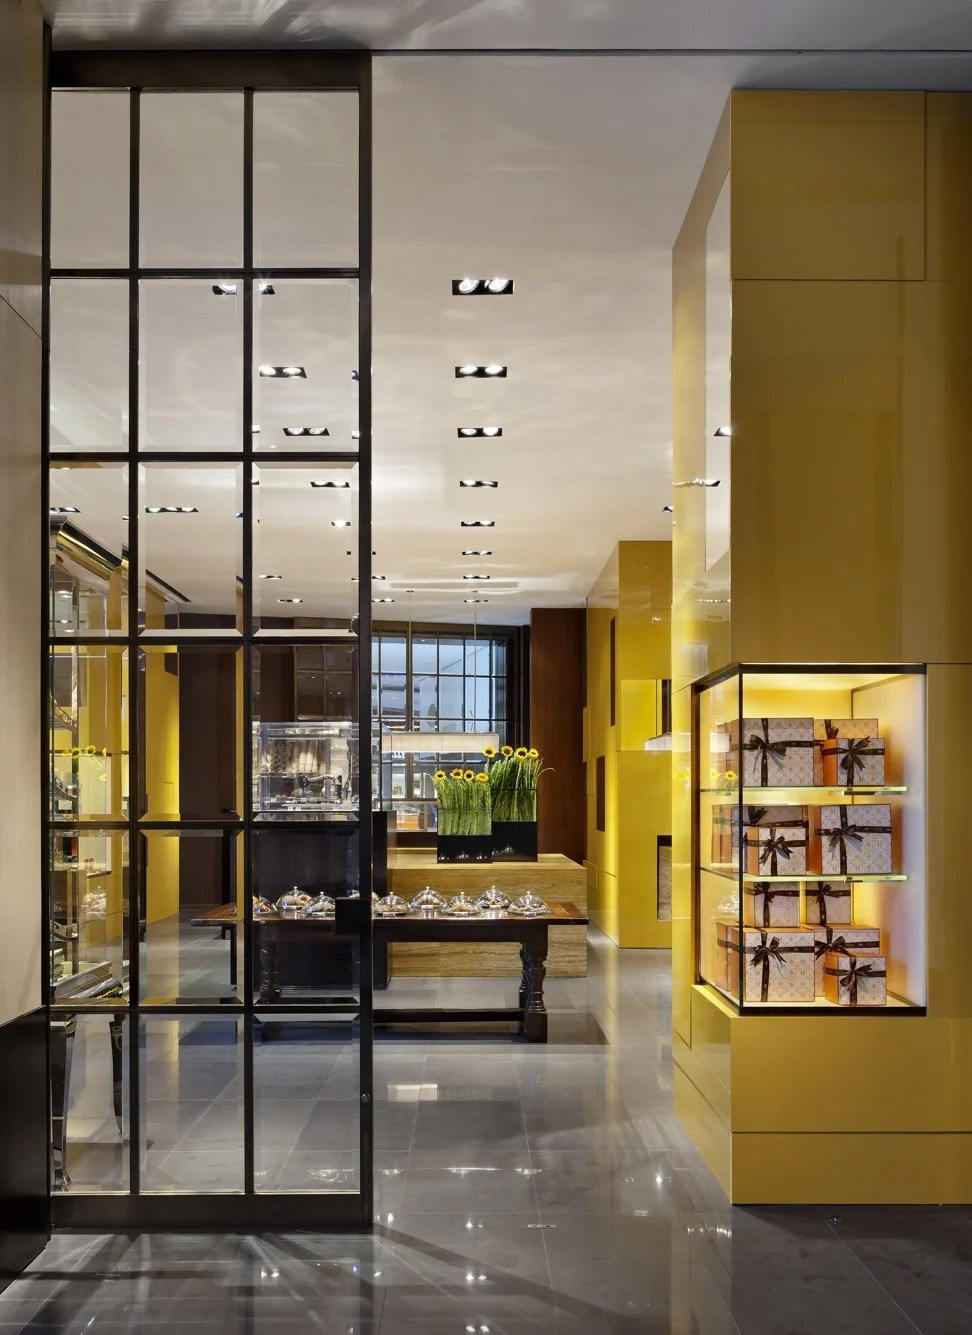 Kuche Store Jakarta Designer James Jj Acuna On Creating A Space That Caters To The